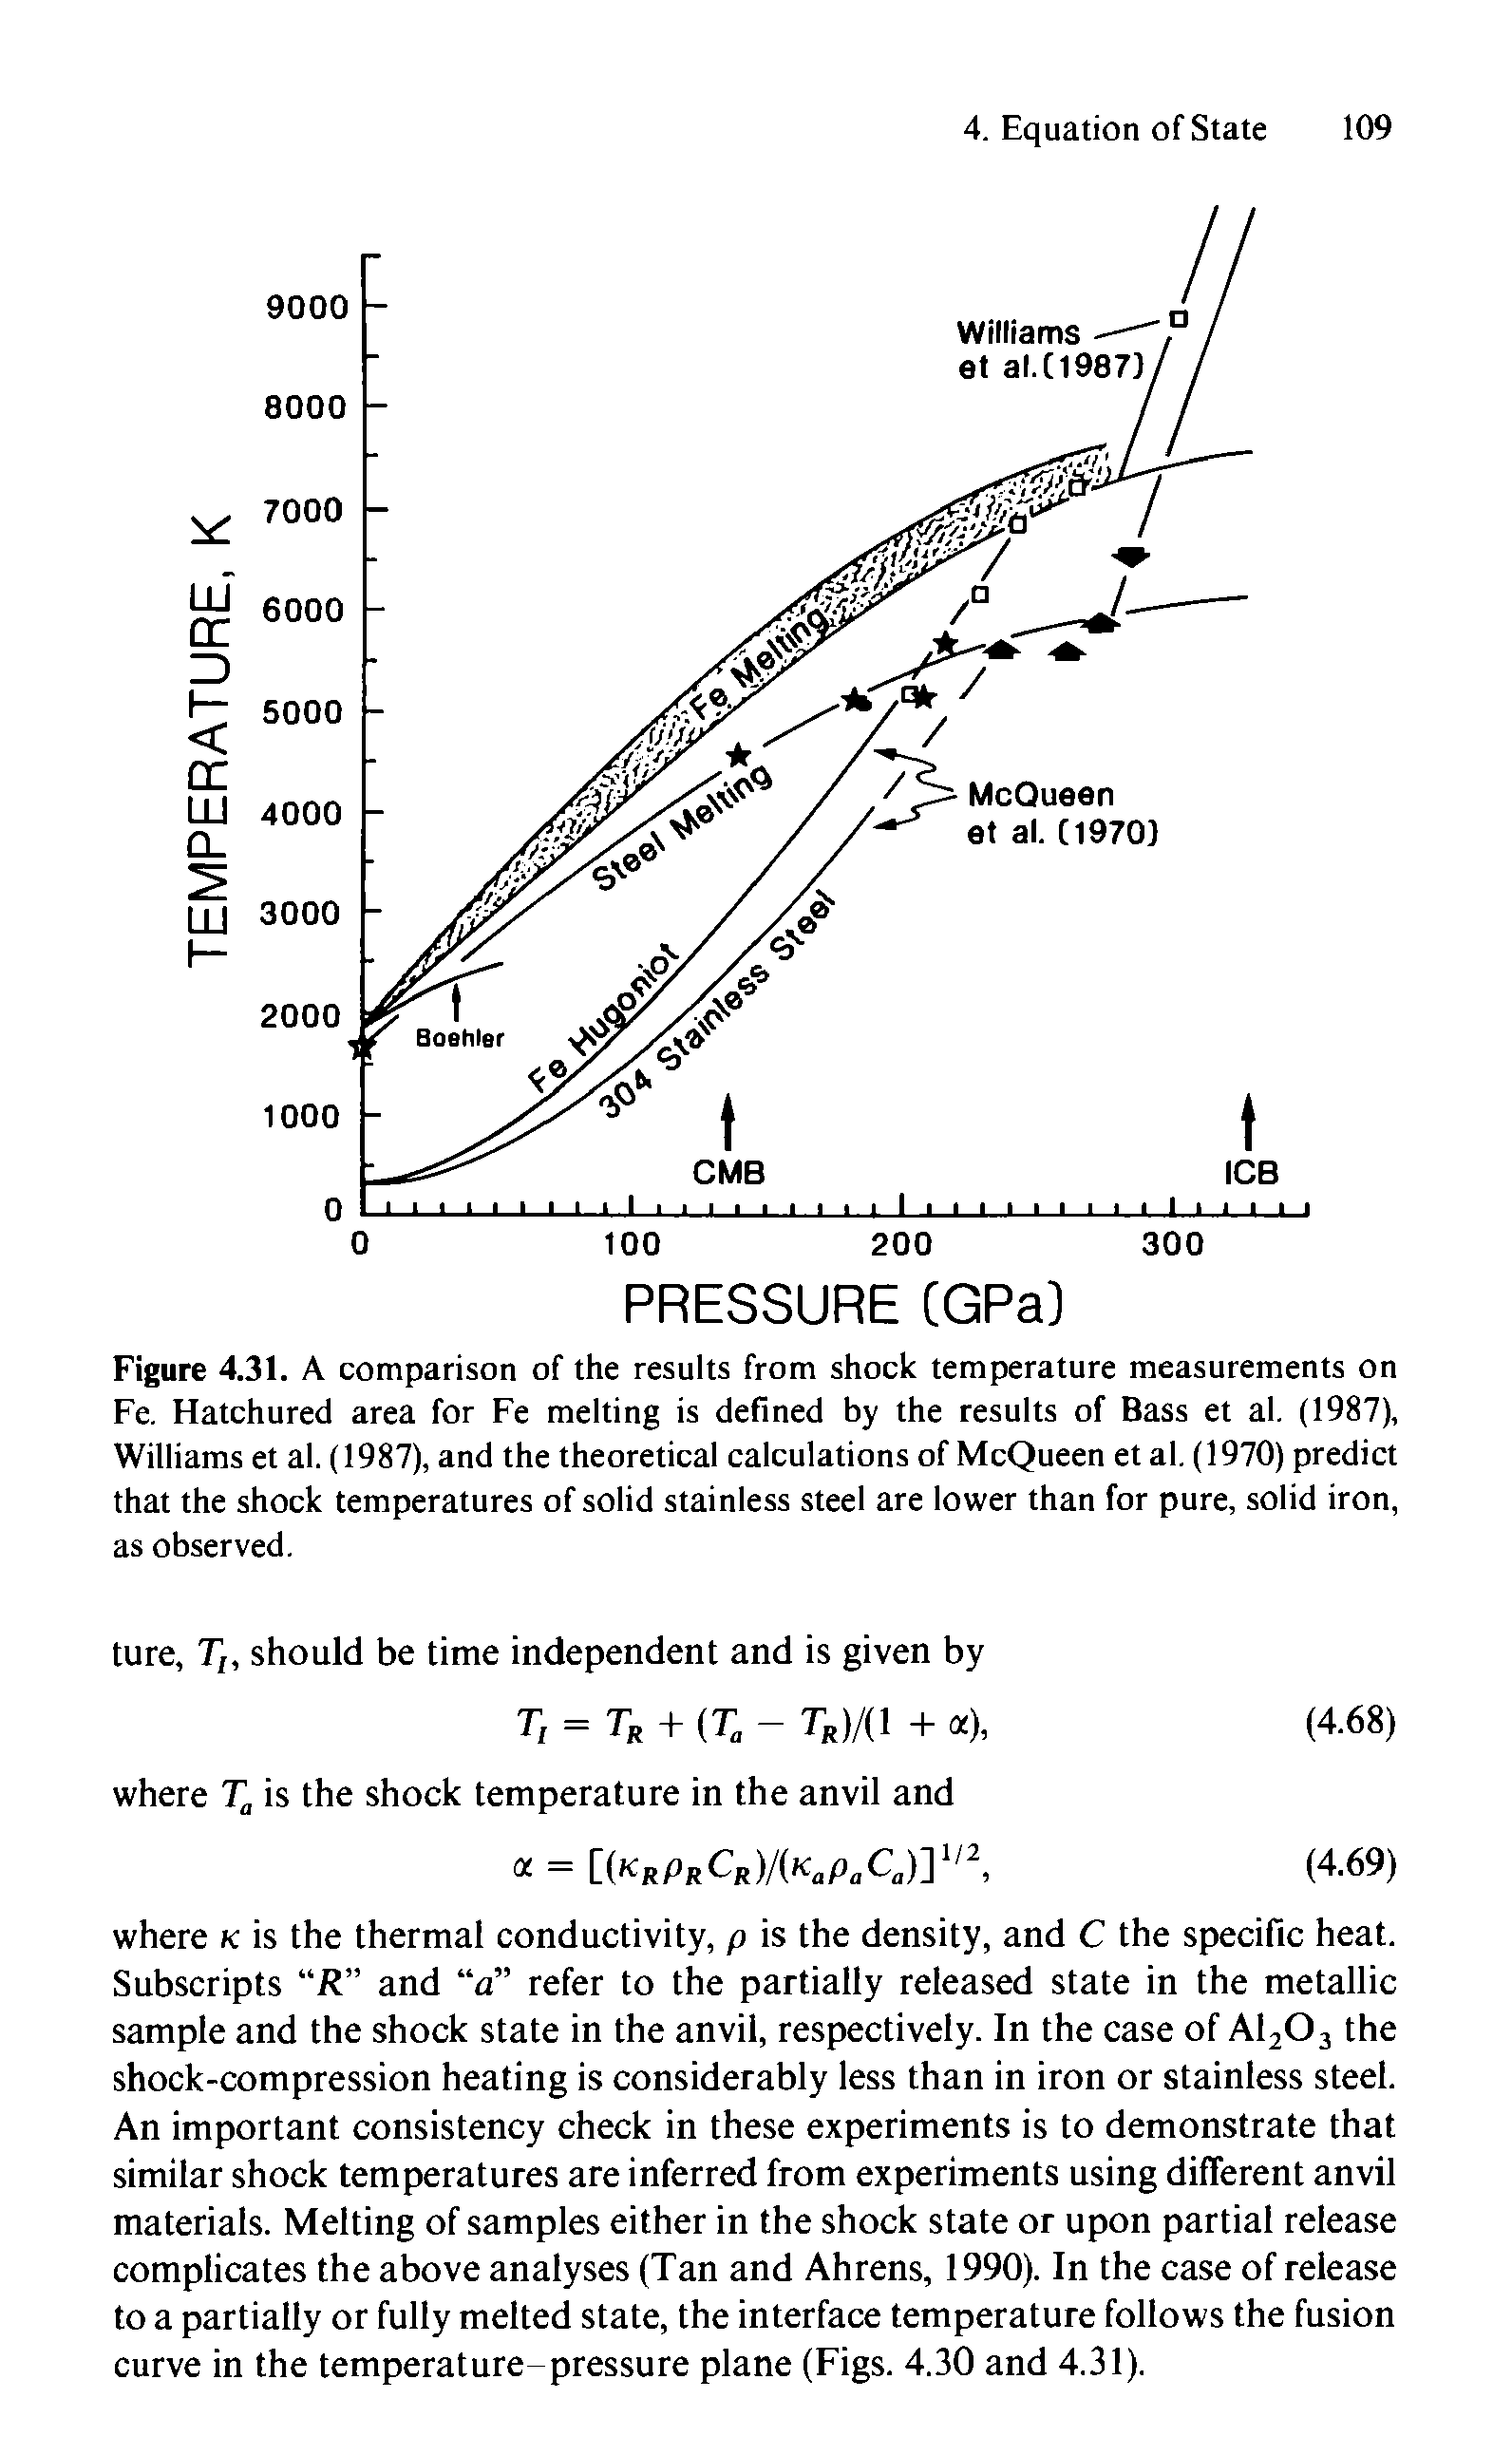 "Figure 4.31. A comparison of the results from <a href=""/info/shock_temperature"">shock temperature</a> measurements on Fe. Hatchured area for Fe melting is defined by the results of Bass et al. (1987), Williams et al. (1987), and the <a href=""/info/theoretical_calculations"">theoretical calculations</a> of McQueen et al. (1970) predict that the <a href=""/info/shock_temperature"">shock temperatures</a> of solid <a href=""/info/stainless_steel"">stainless steel</a> are lower than for pure, solid iron, as observed."